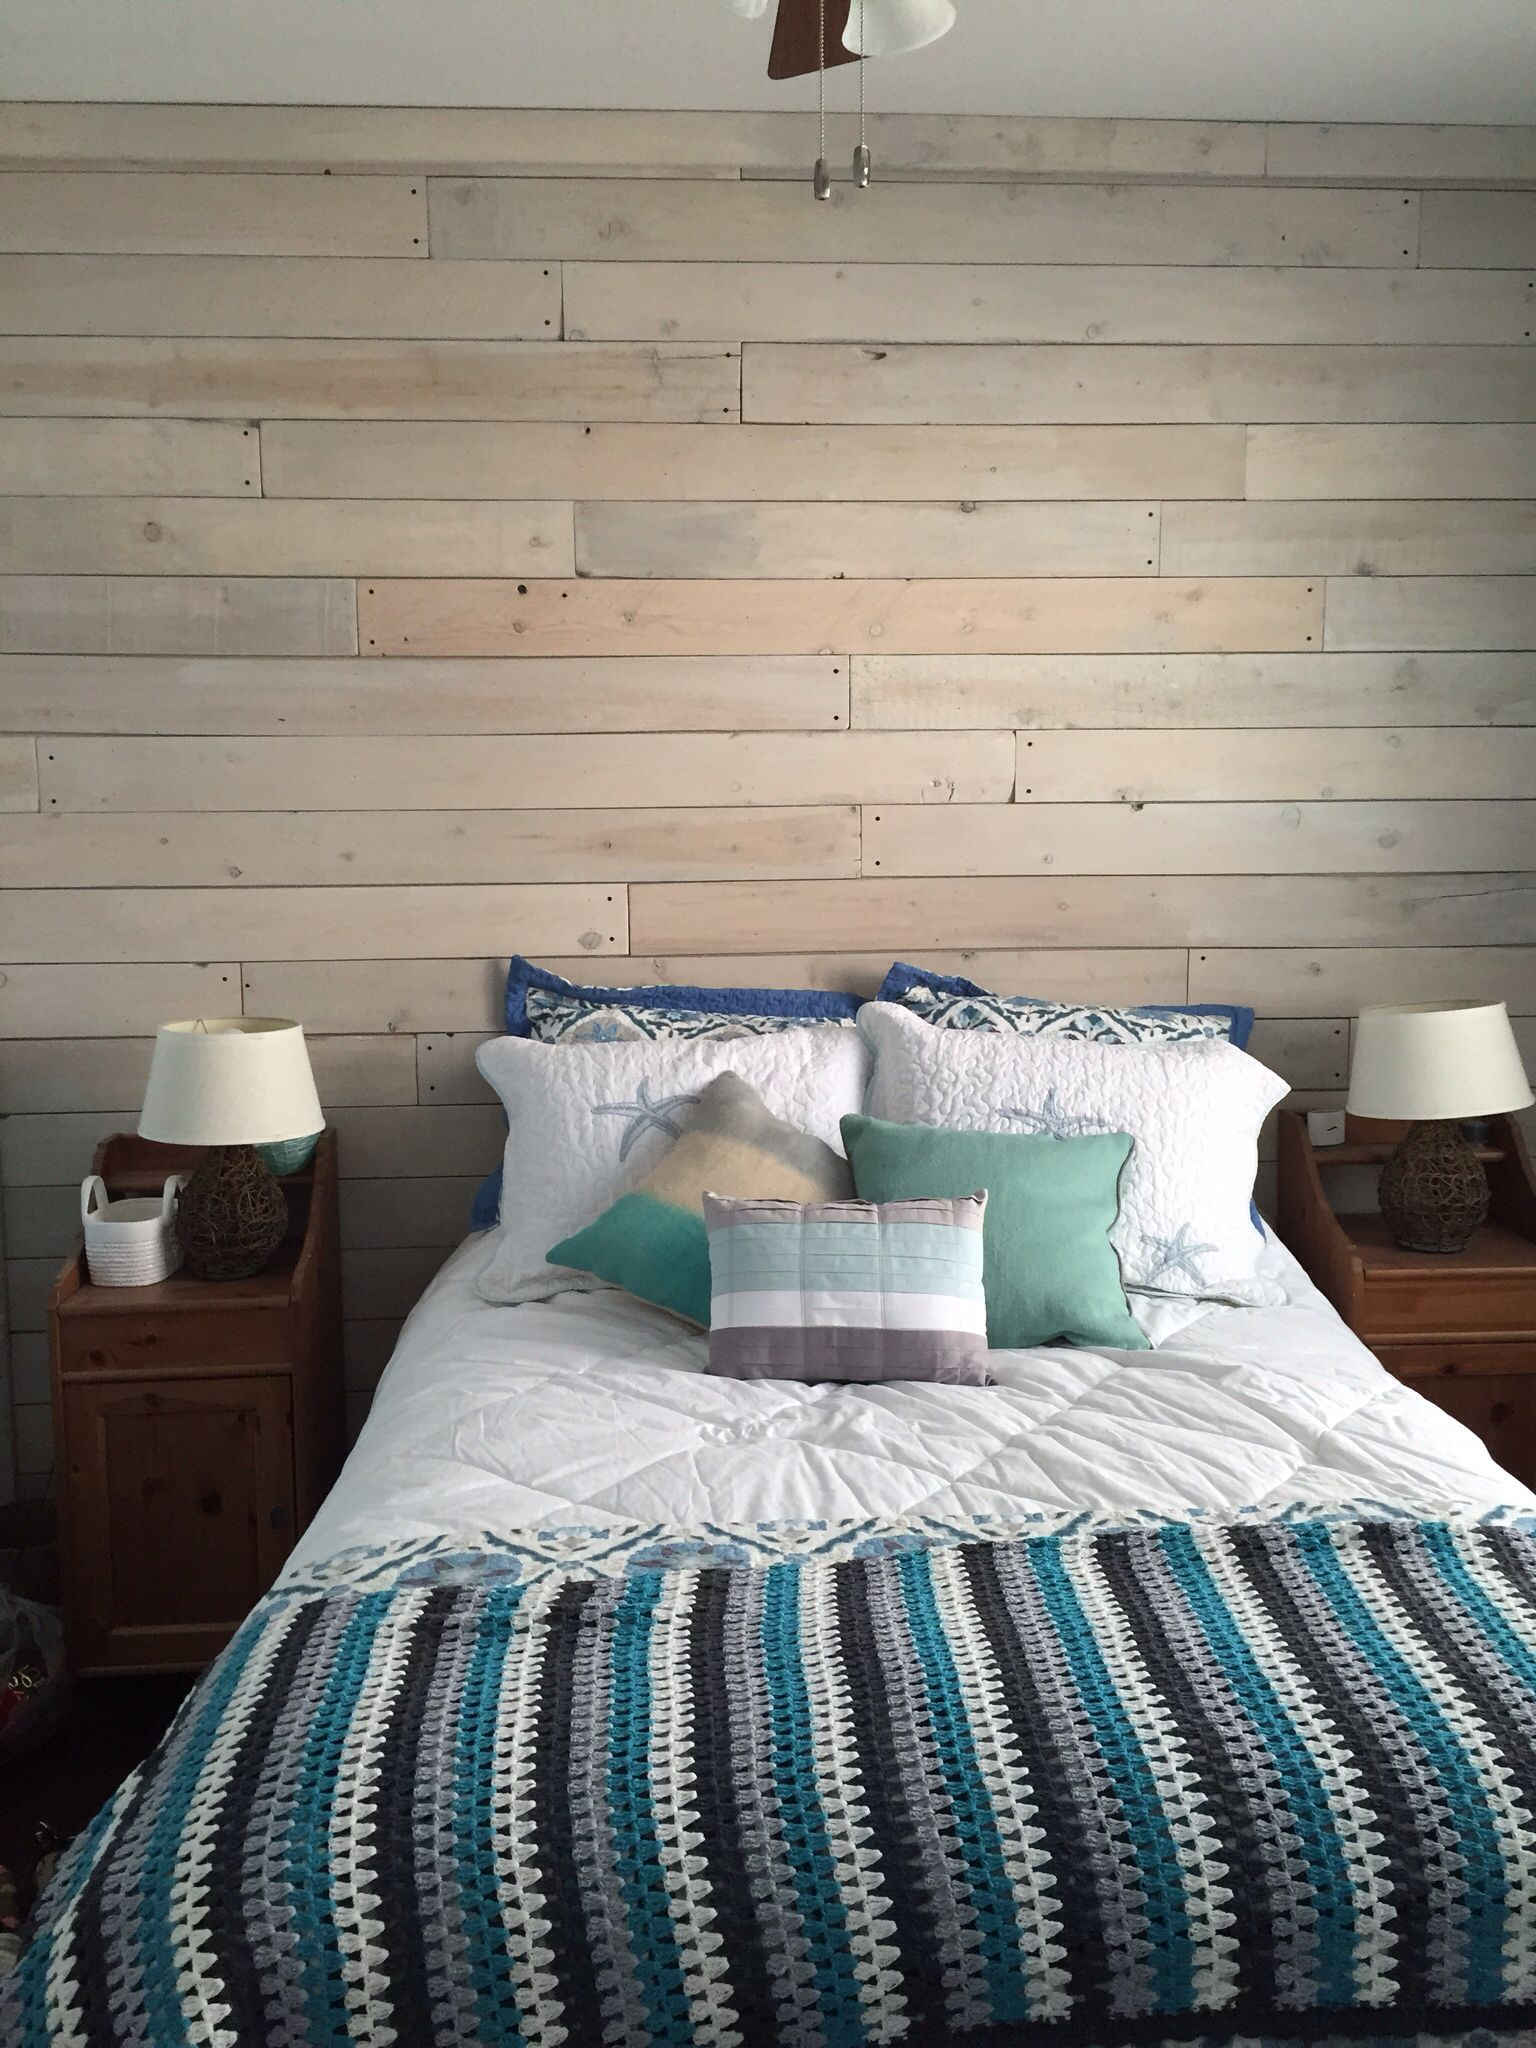 Owen s olivia whitewashed wood technique tutorial - Whitewashed Wood Panels In Guest Bedroom Wood Used Cheap Cedar Fence Boards Sanded